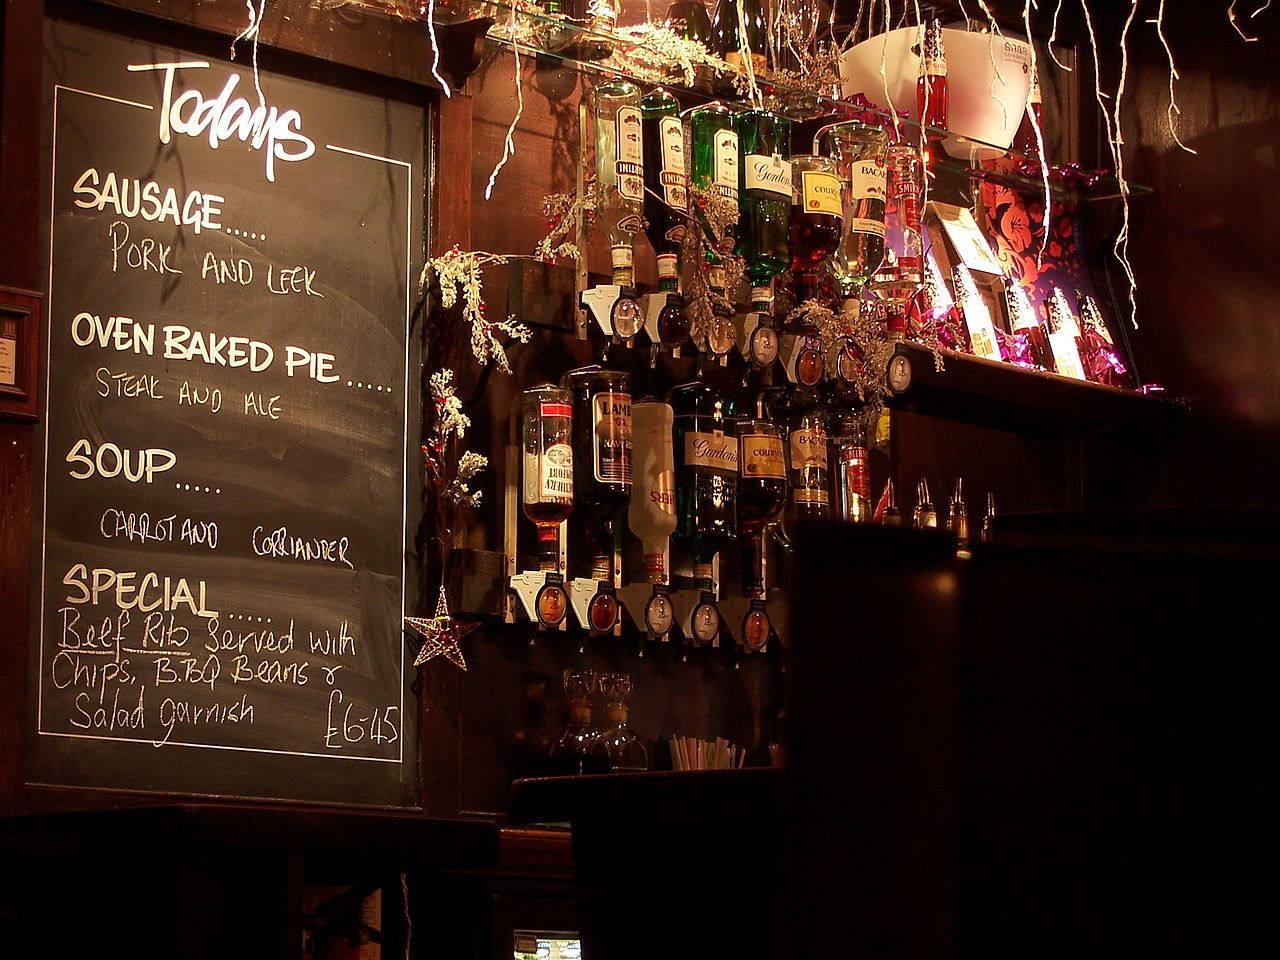 London Pubs: 14 Of The Best Pubs In London (Updated Feb 17)